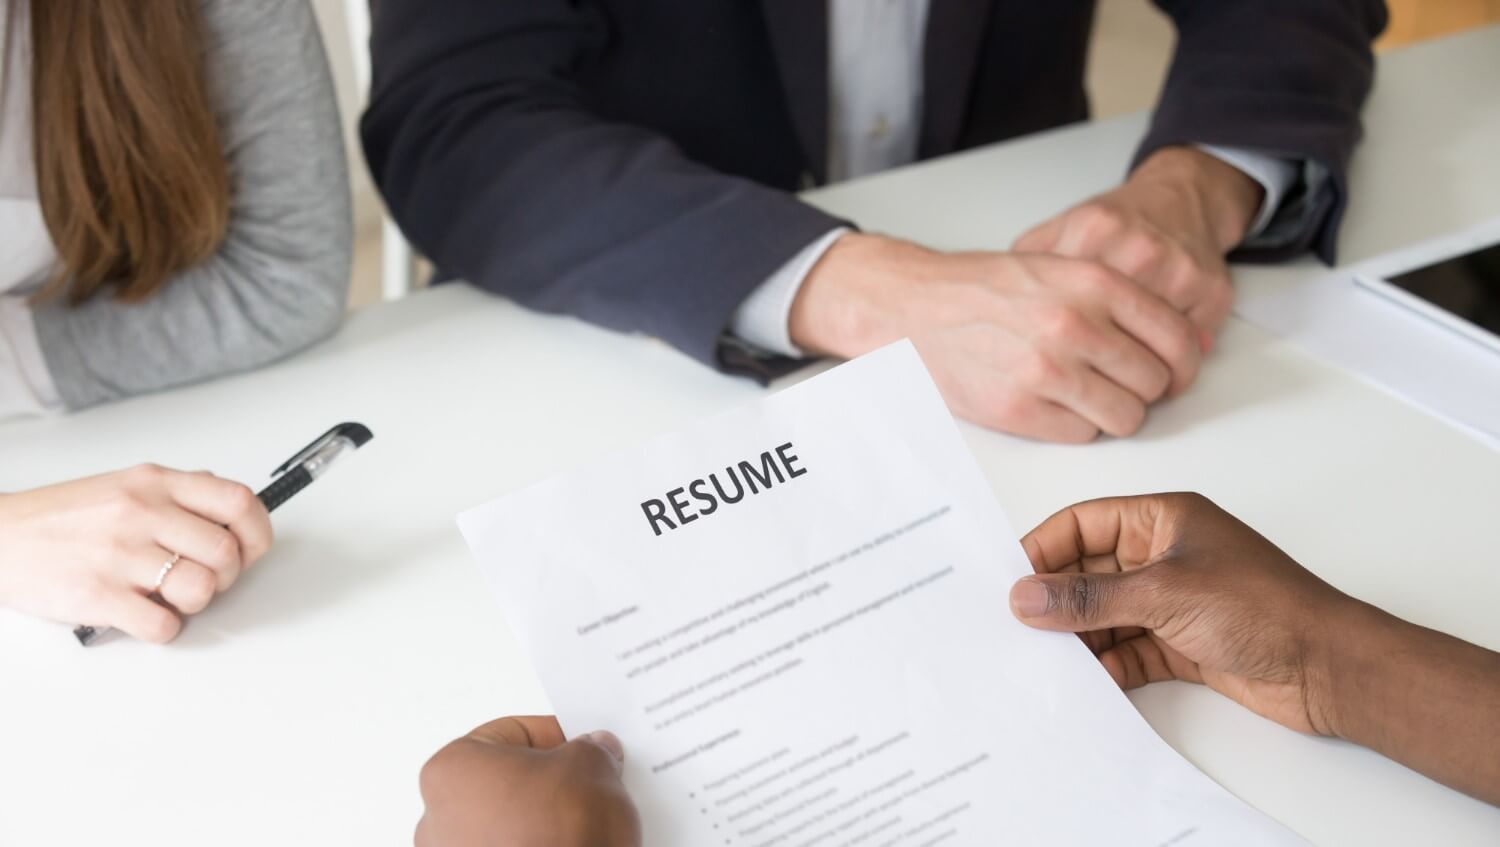 Why Namshi careers has a fantastic long-term global growth<div><span style='color:#a0a0a0;font-size:16px;text-transform:none;line-height:1.1'>If you are considering a career in the digital platform, working for Namshi could be a great option. Here's why.</span></div>